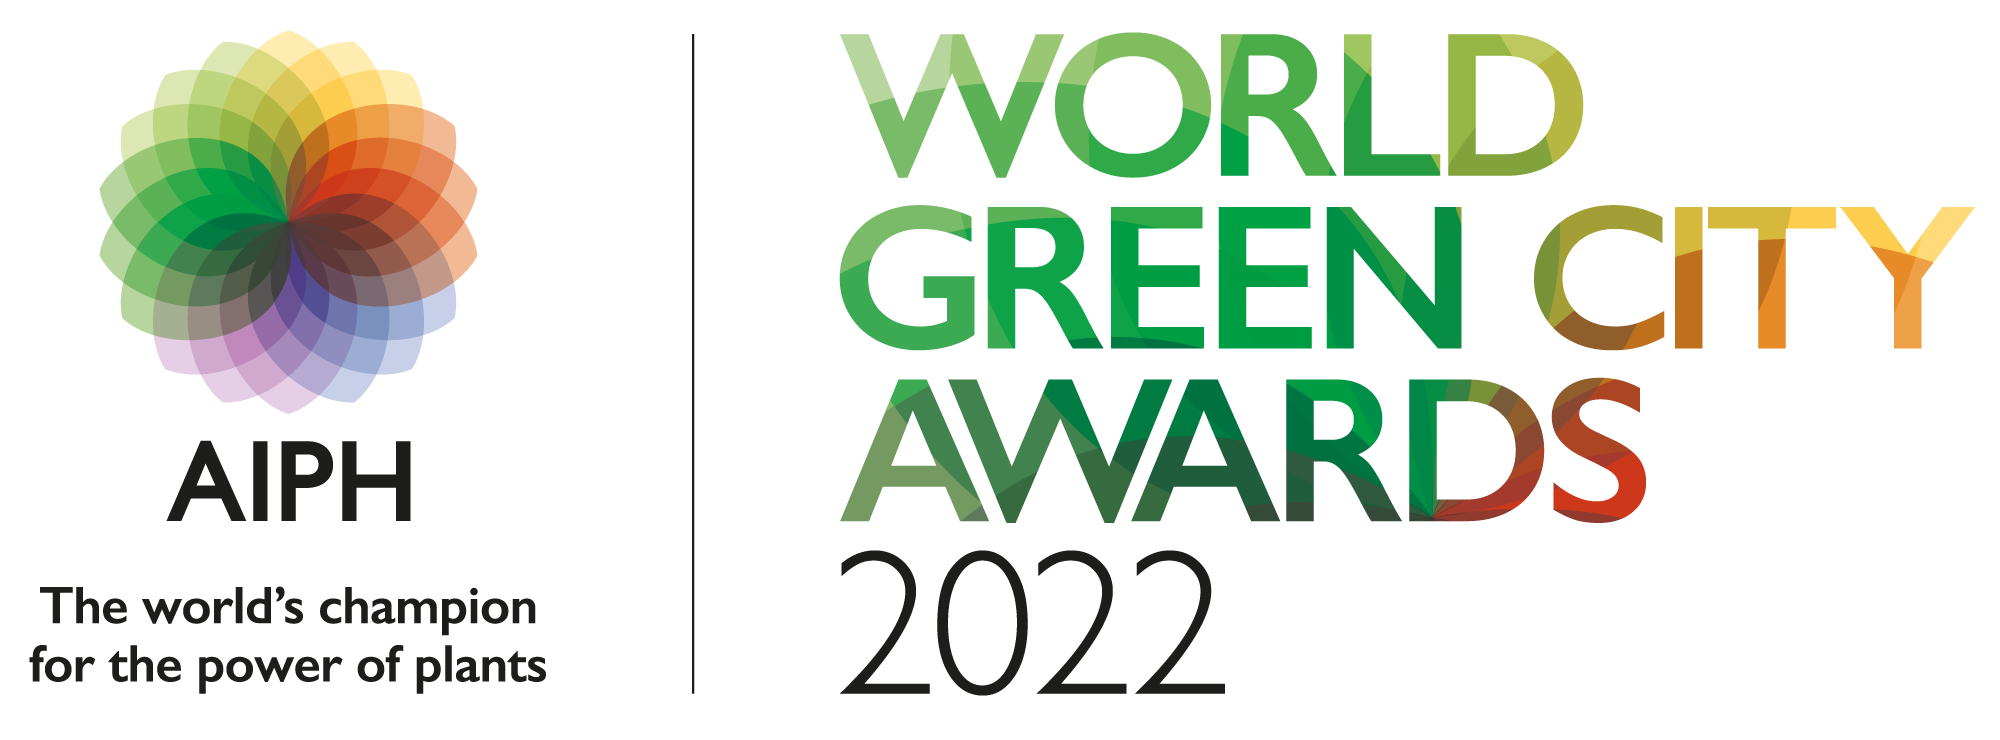 World Green City Awards 2022 Logo